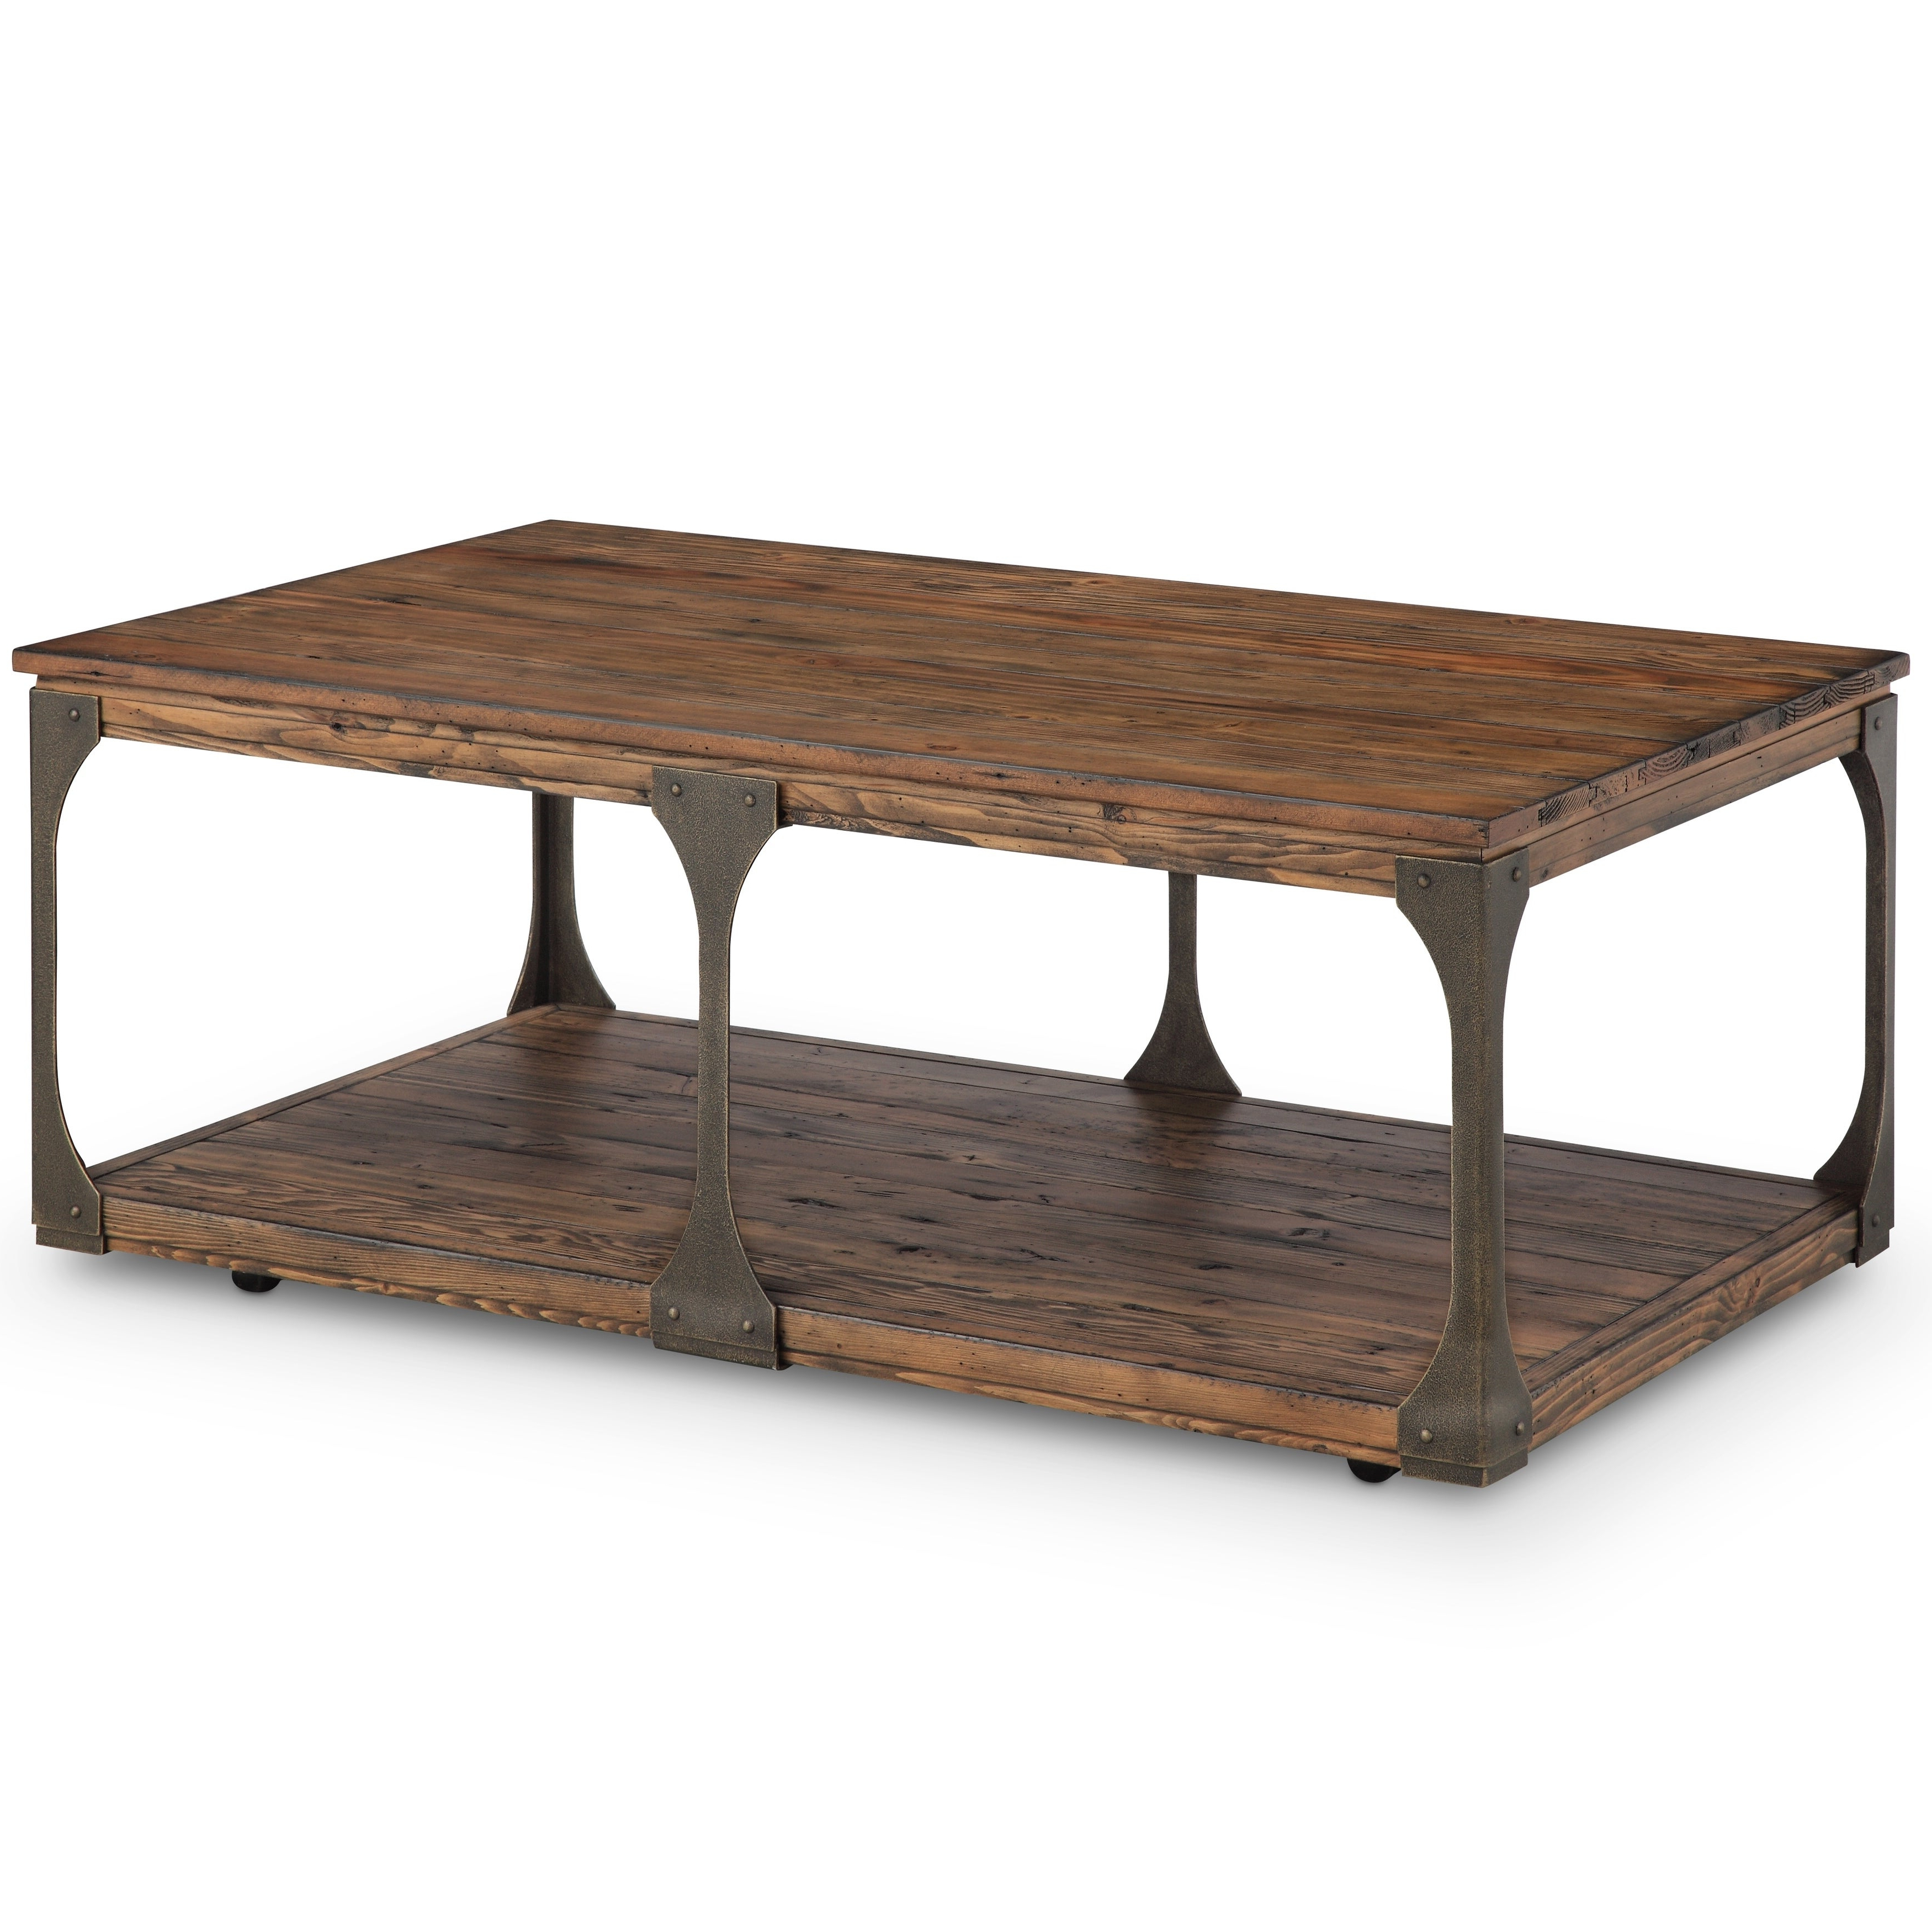 Well Known Montgomery Industrial Reclaimed Wood Coffee Tables With Casters Inside Montgomery Industrial Bourbon Reclaimed Wood Coffee Table With Casters (View 17 of 20)